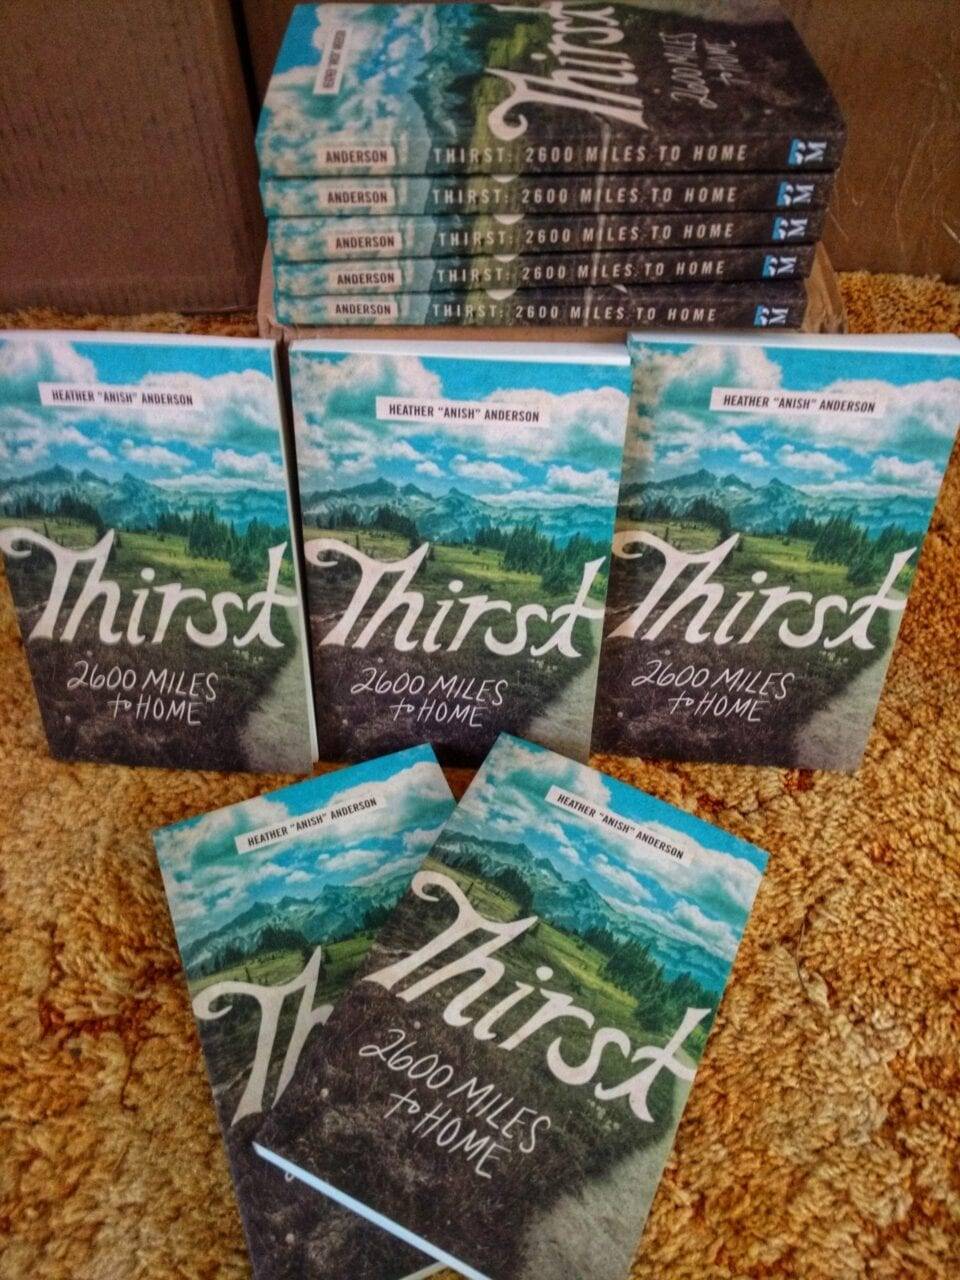 A stack of books called Thirst: 2600 miles to home by Heather Anderson.